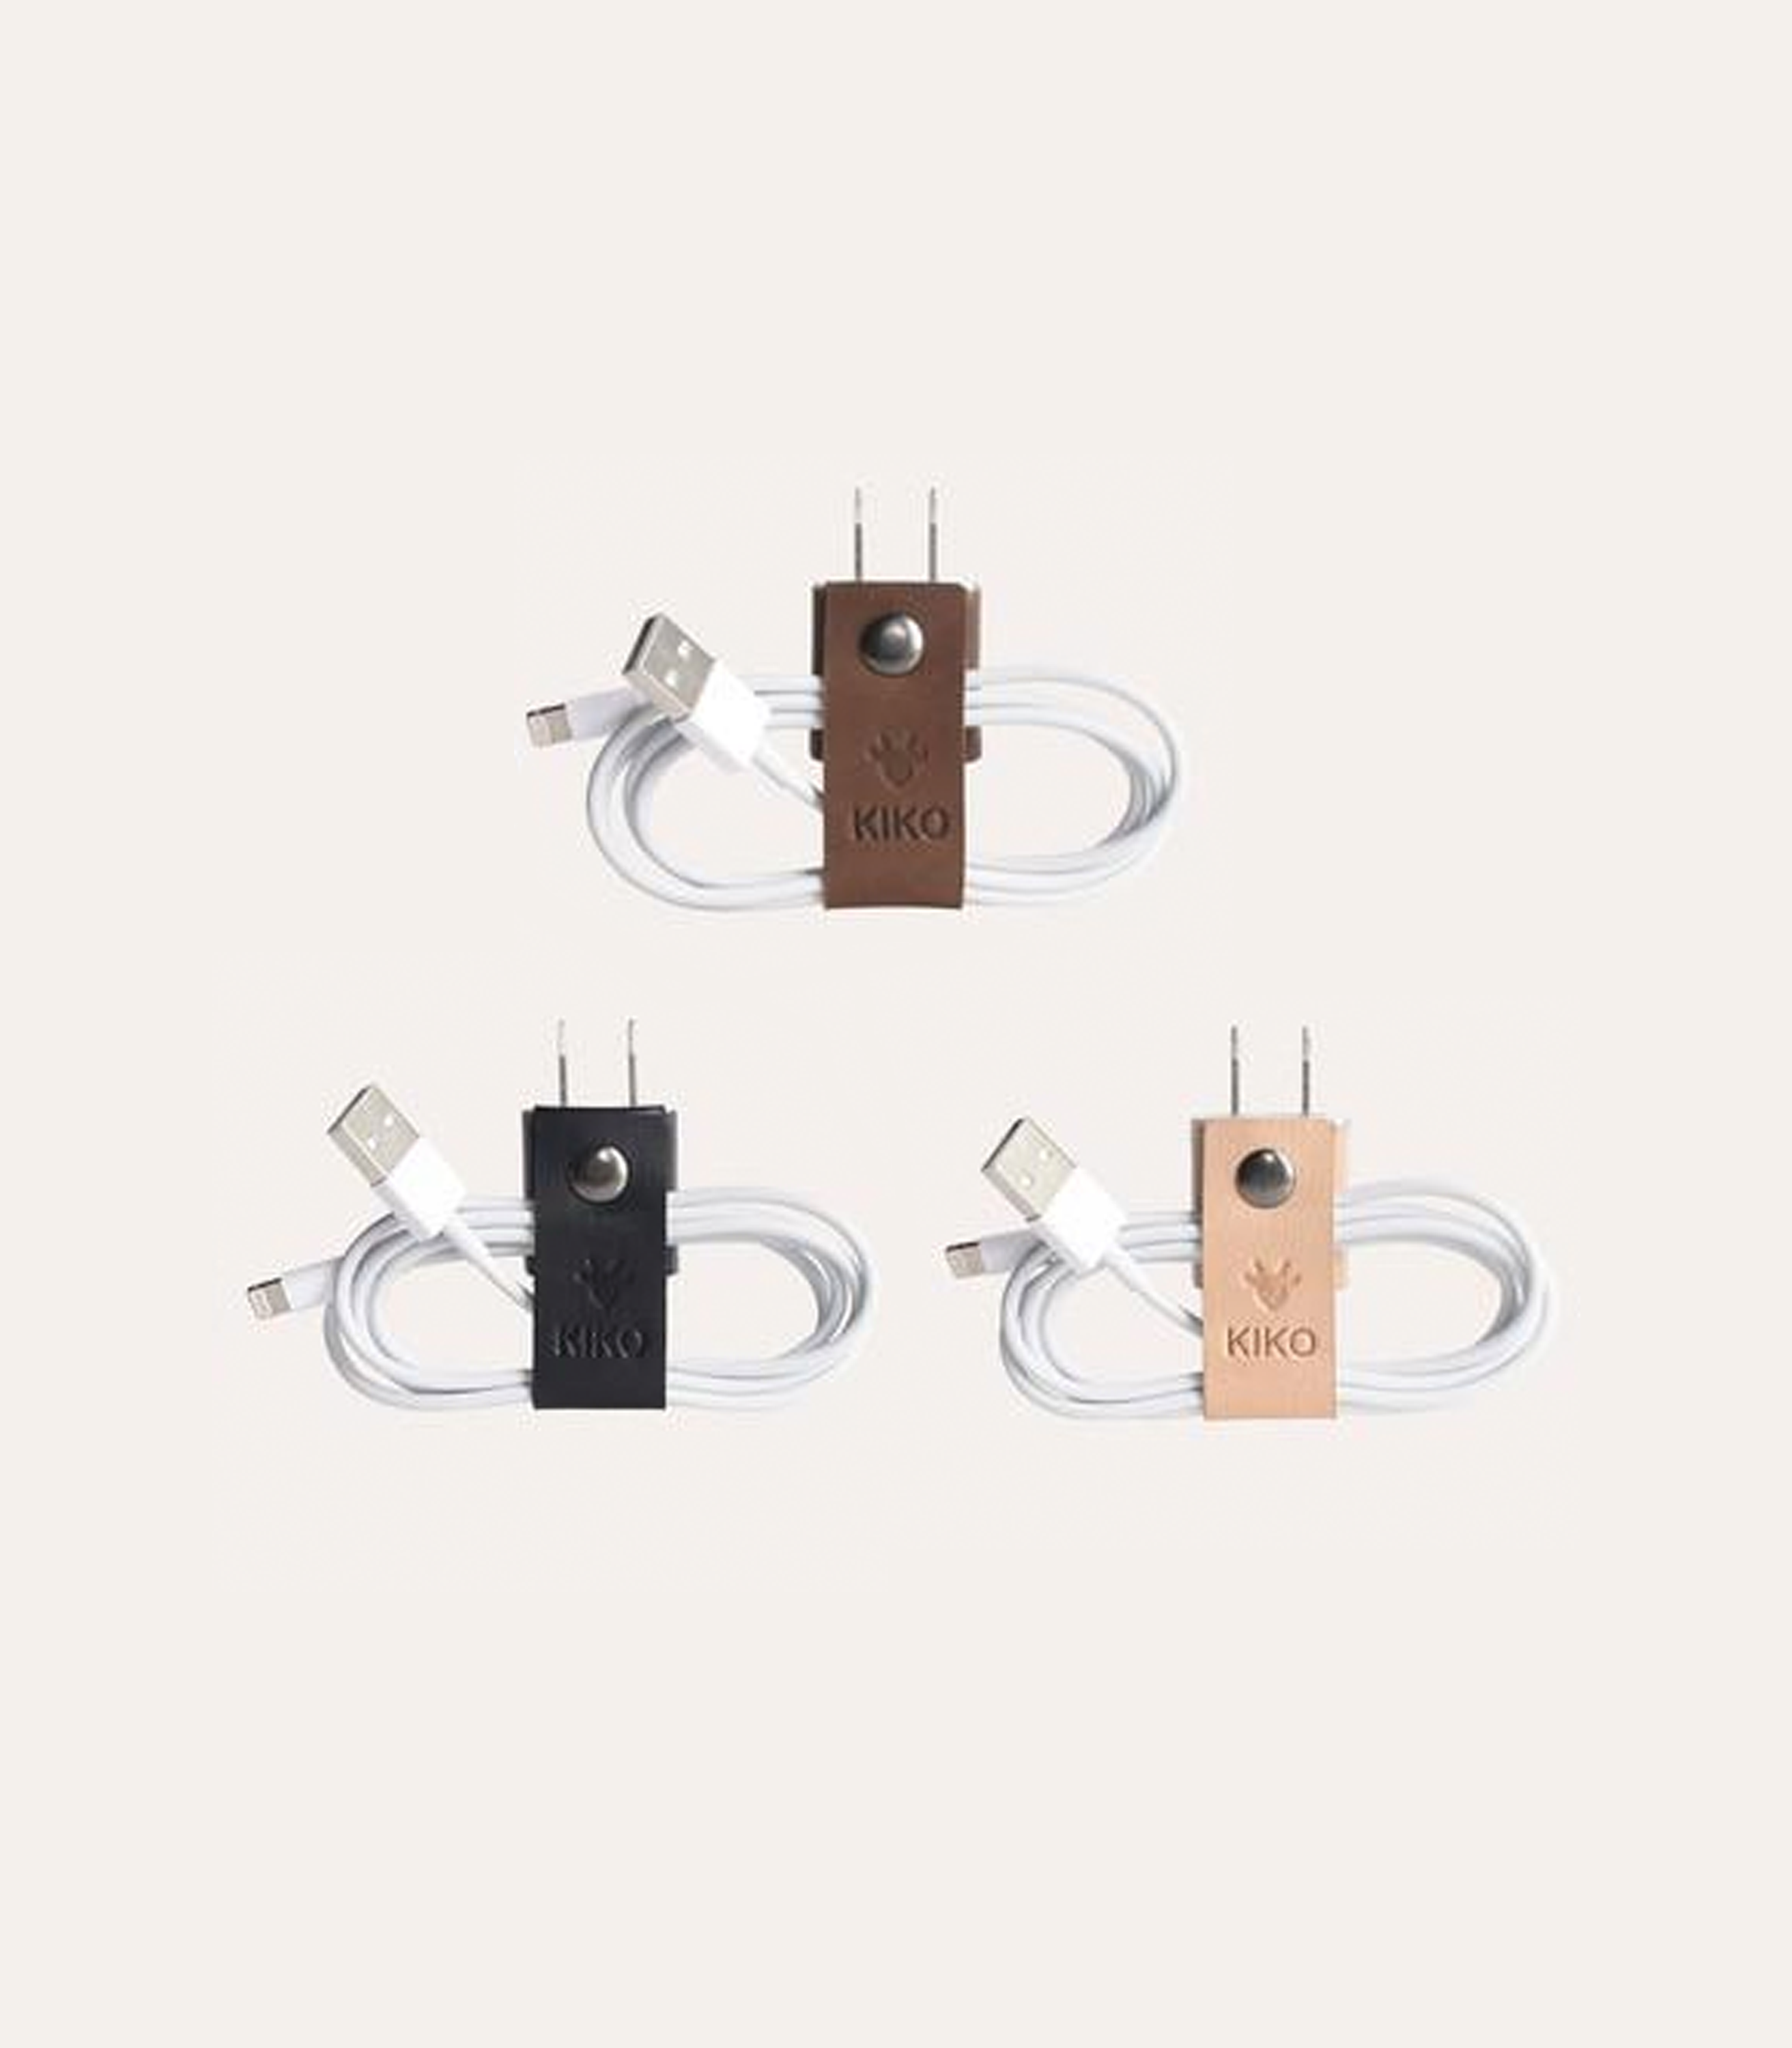 Kiko Leather Cord Organizer